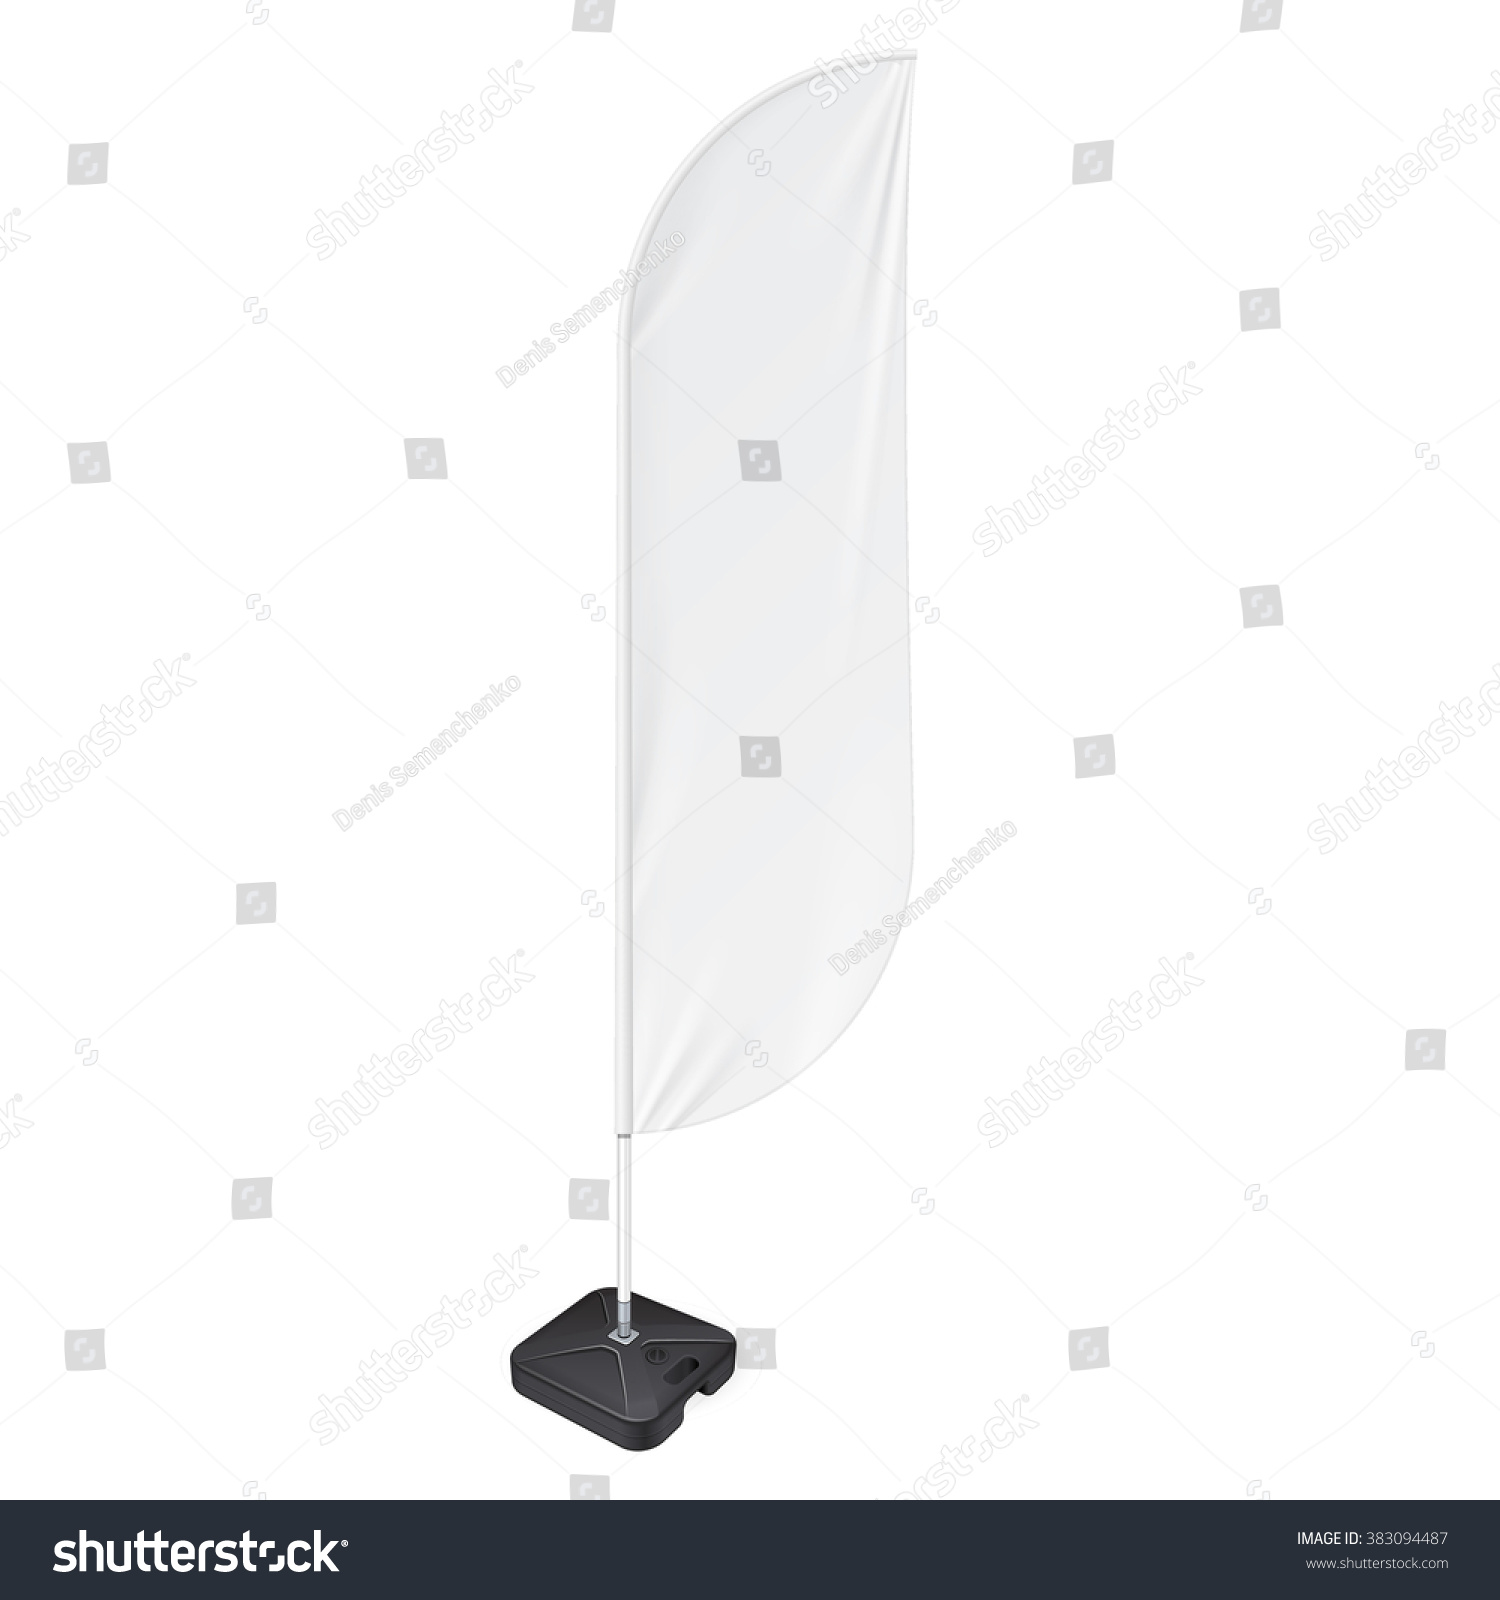 white outdoor feather flag ground fillable stock vector 383094487 shutterstock. Black Bedroom Furniture Sets. Home Design Ideas